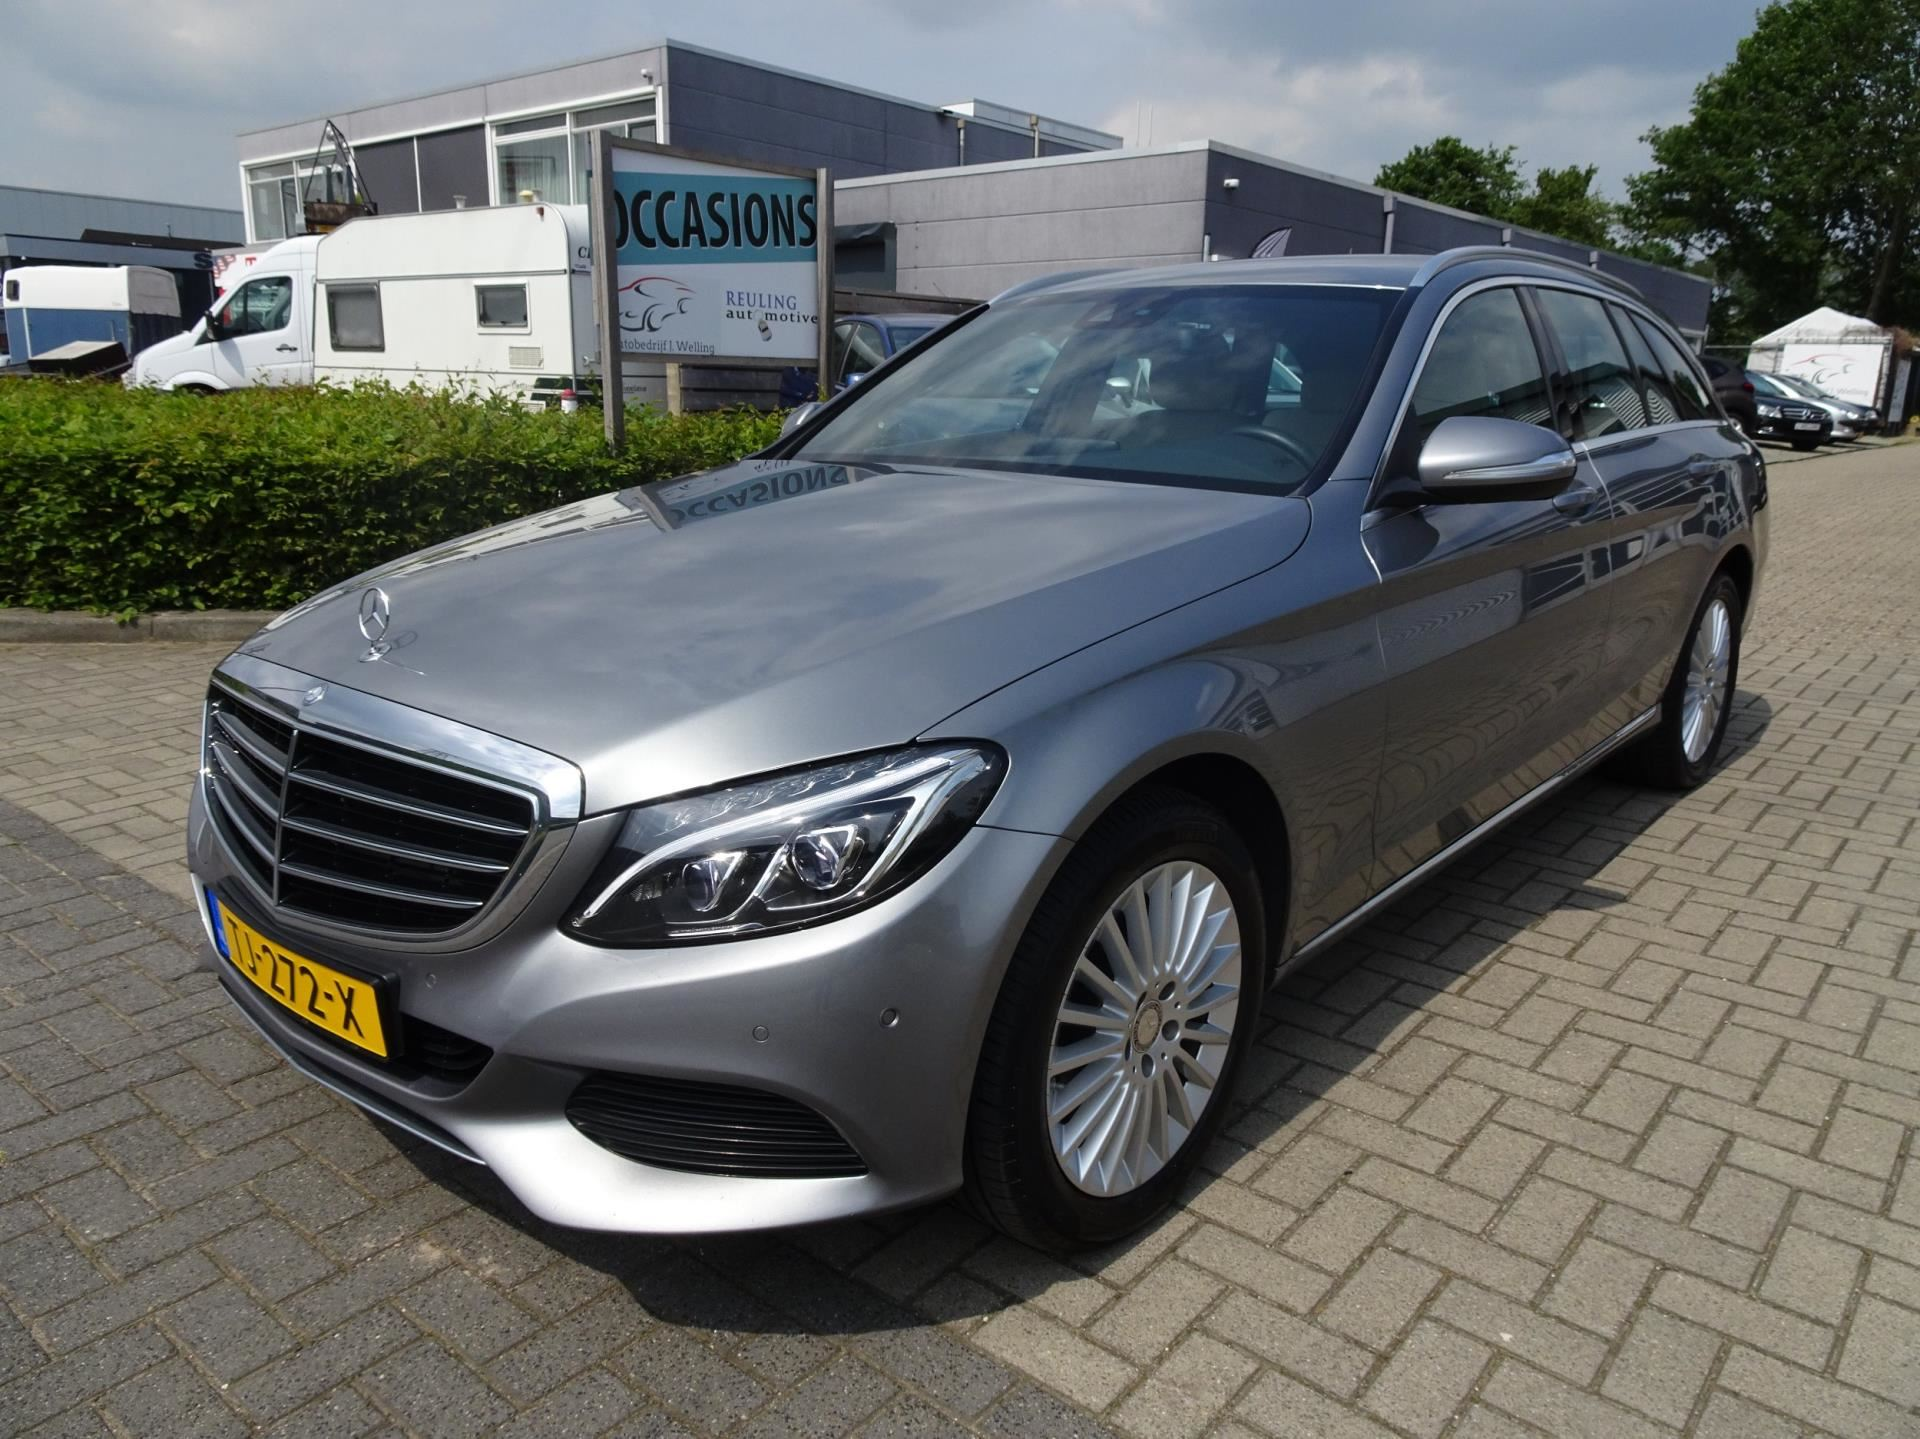 Mercedes-Benz C-klasse Estate occasion - Autobedrijf J. Welling